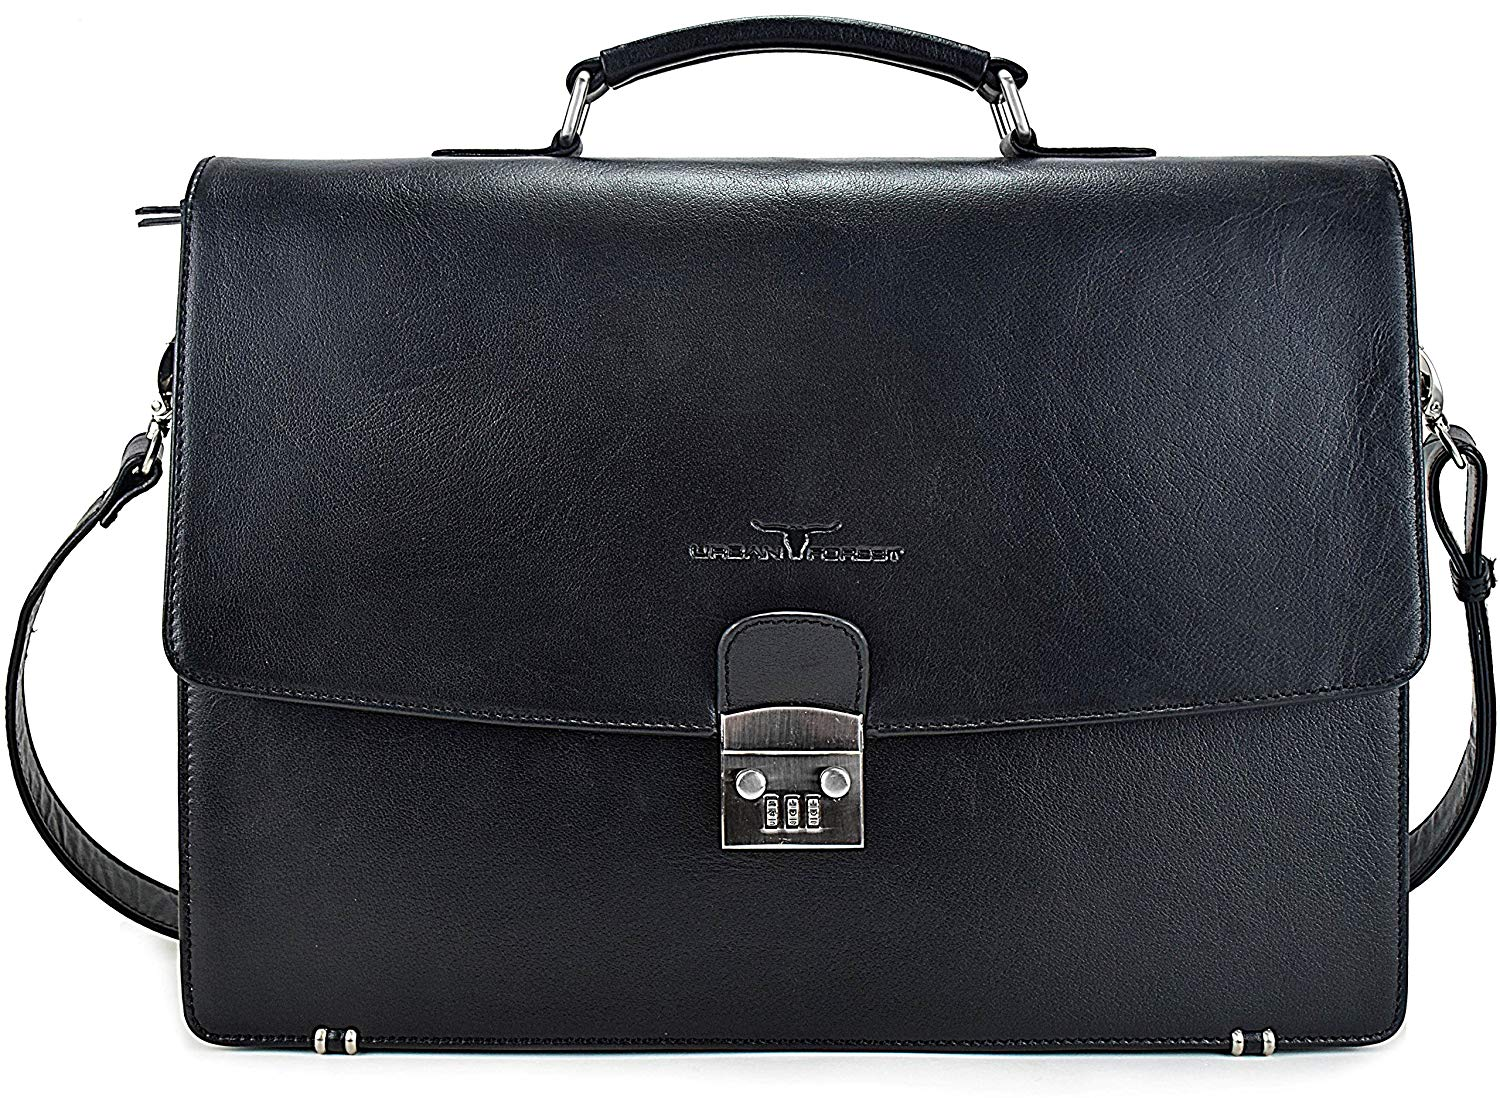 briefcase by Dolphin Leathers